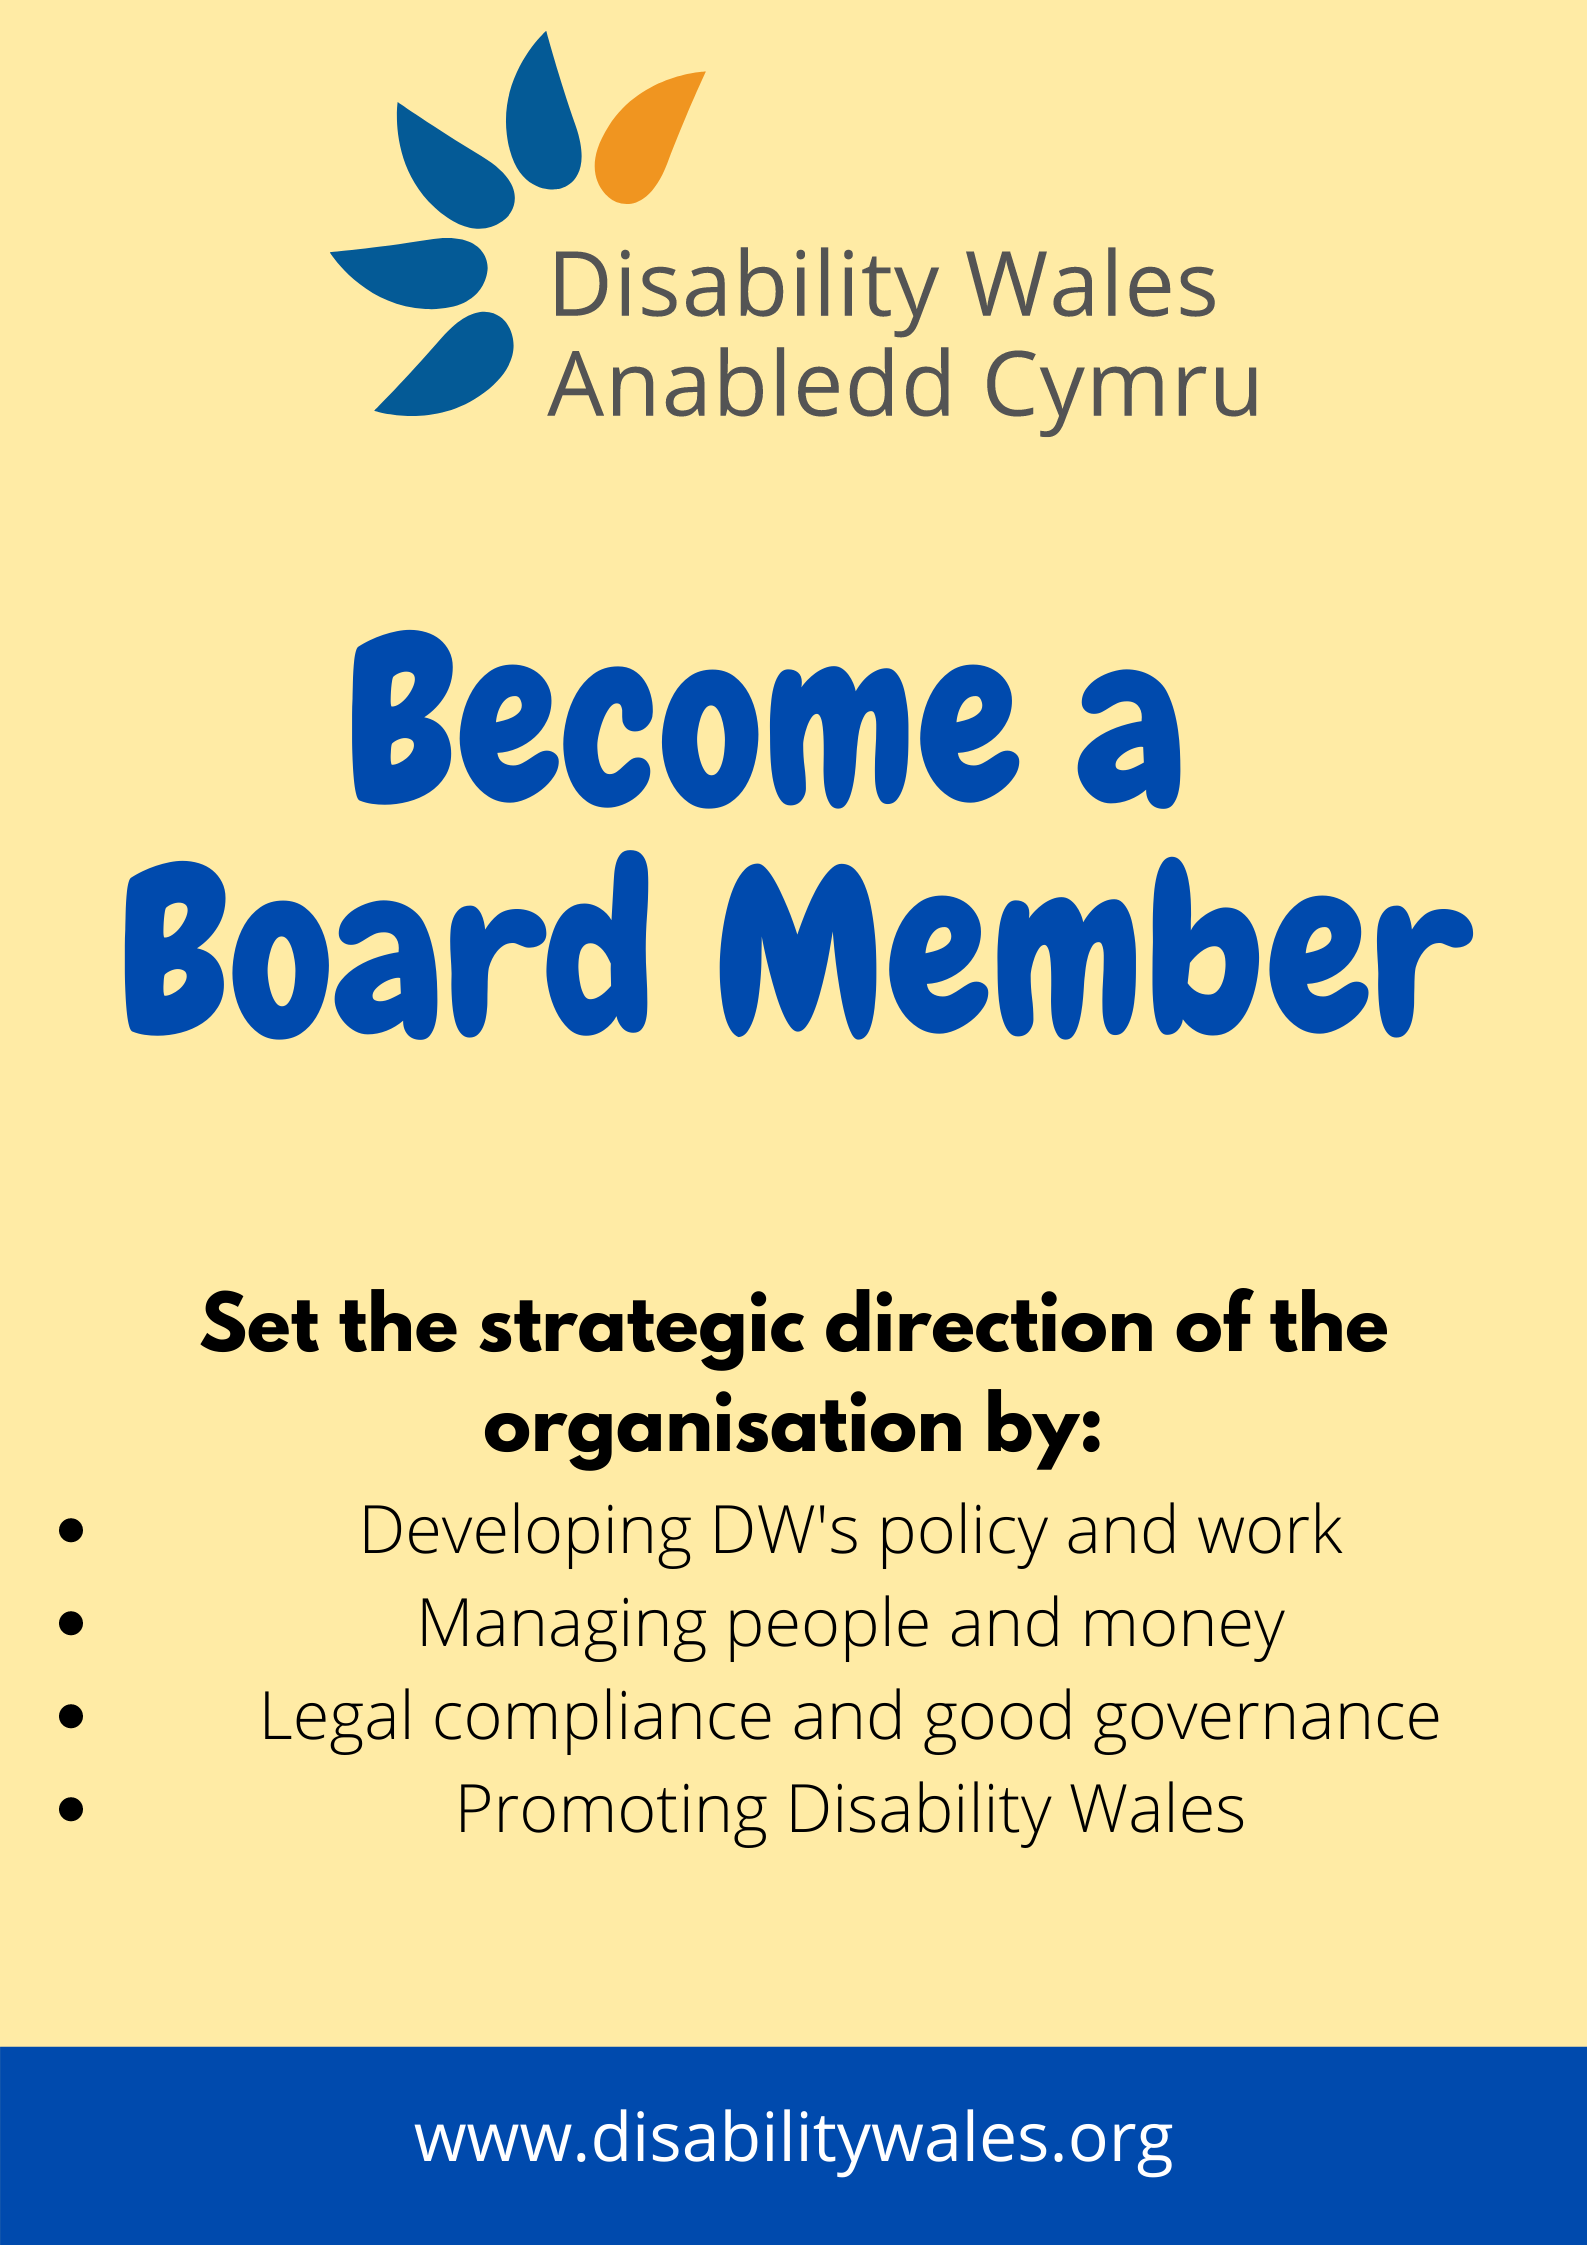 Dark blue text on a light yellow background that reads Become a Board Member, set the strategic direction of the organisation by: Developing DW's policy and work, managing people and money, legal compliance and good governance, promoting Disability Wales